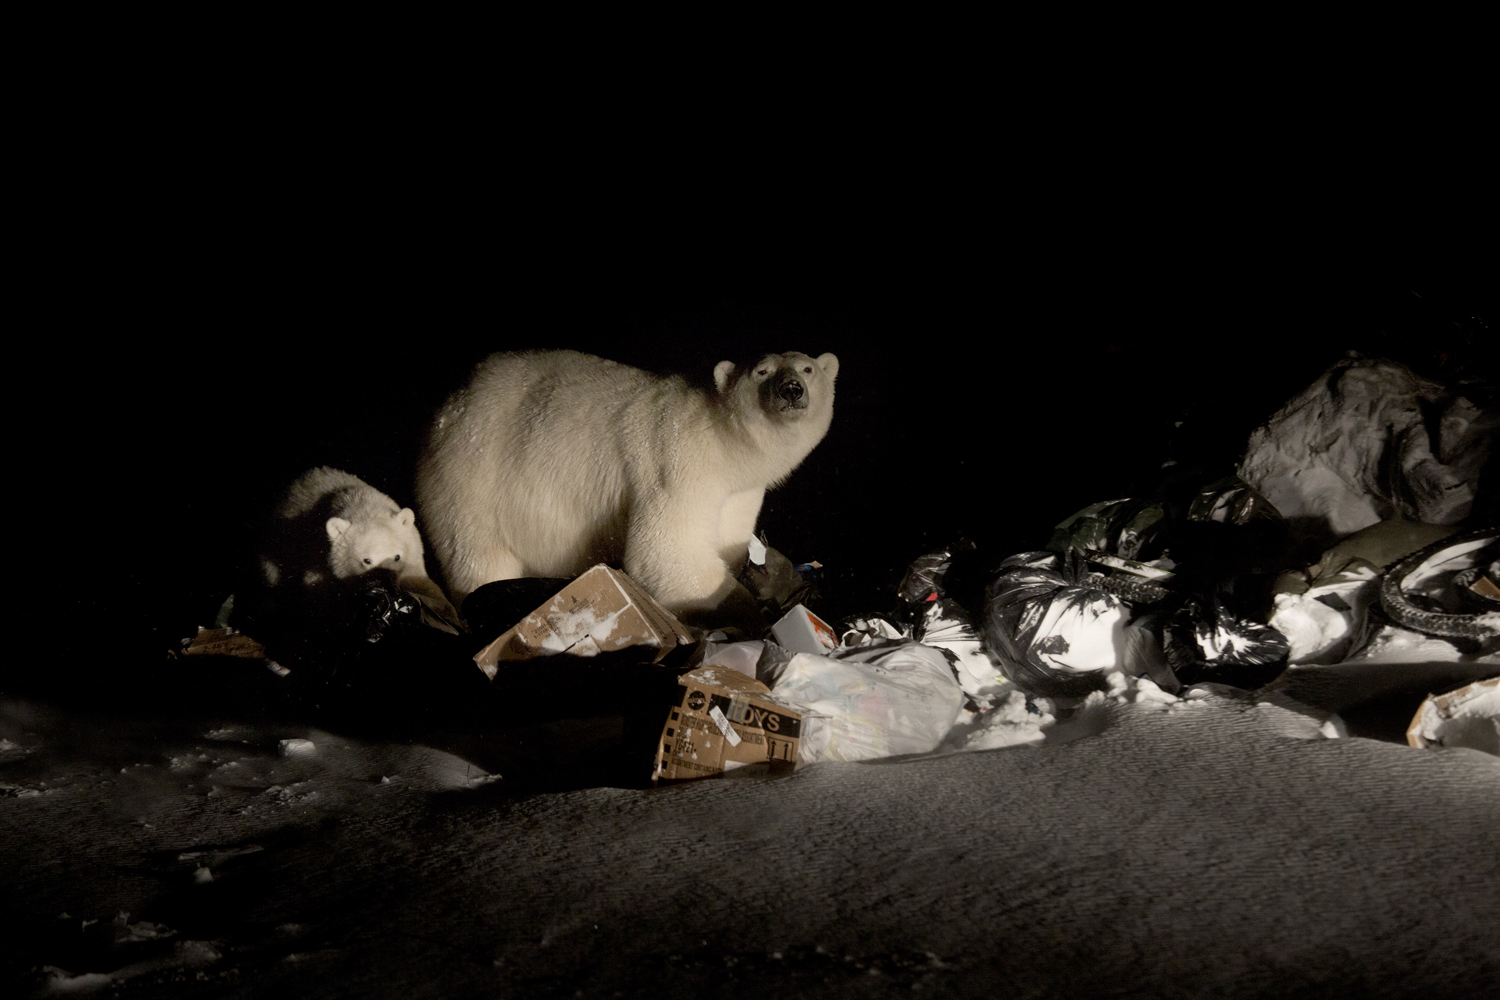 Arviat, Canada, Oct. 31, 2013. A polar bear and her cub rummage through garbage looking for food at the town dump. Due to a change in climate it is becoming more difficult for polar bears to reach their prime hunting spots on the ice. As a result, famished polar bears make their way into human settlements like Arviat.